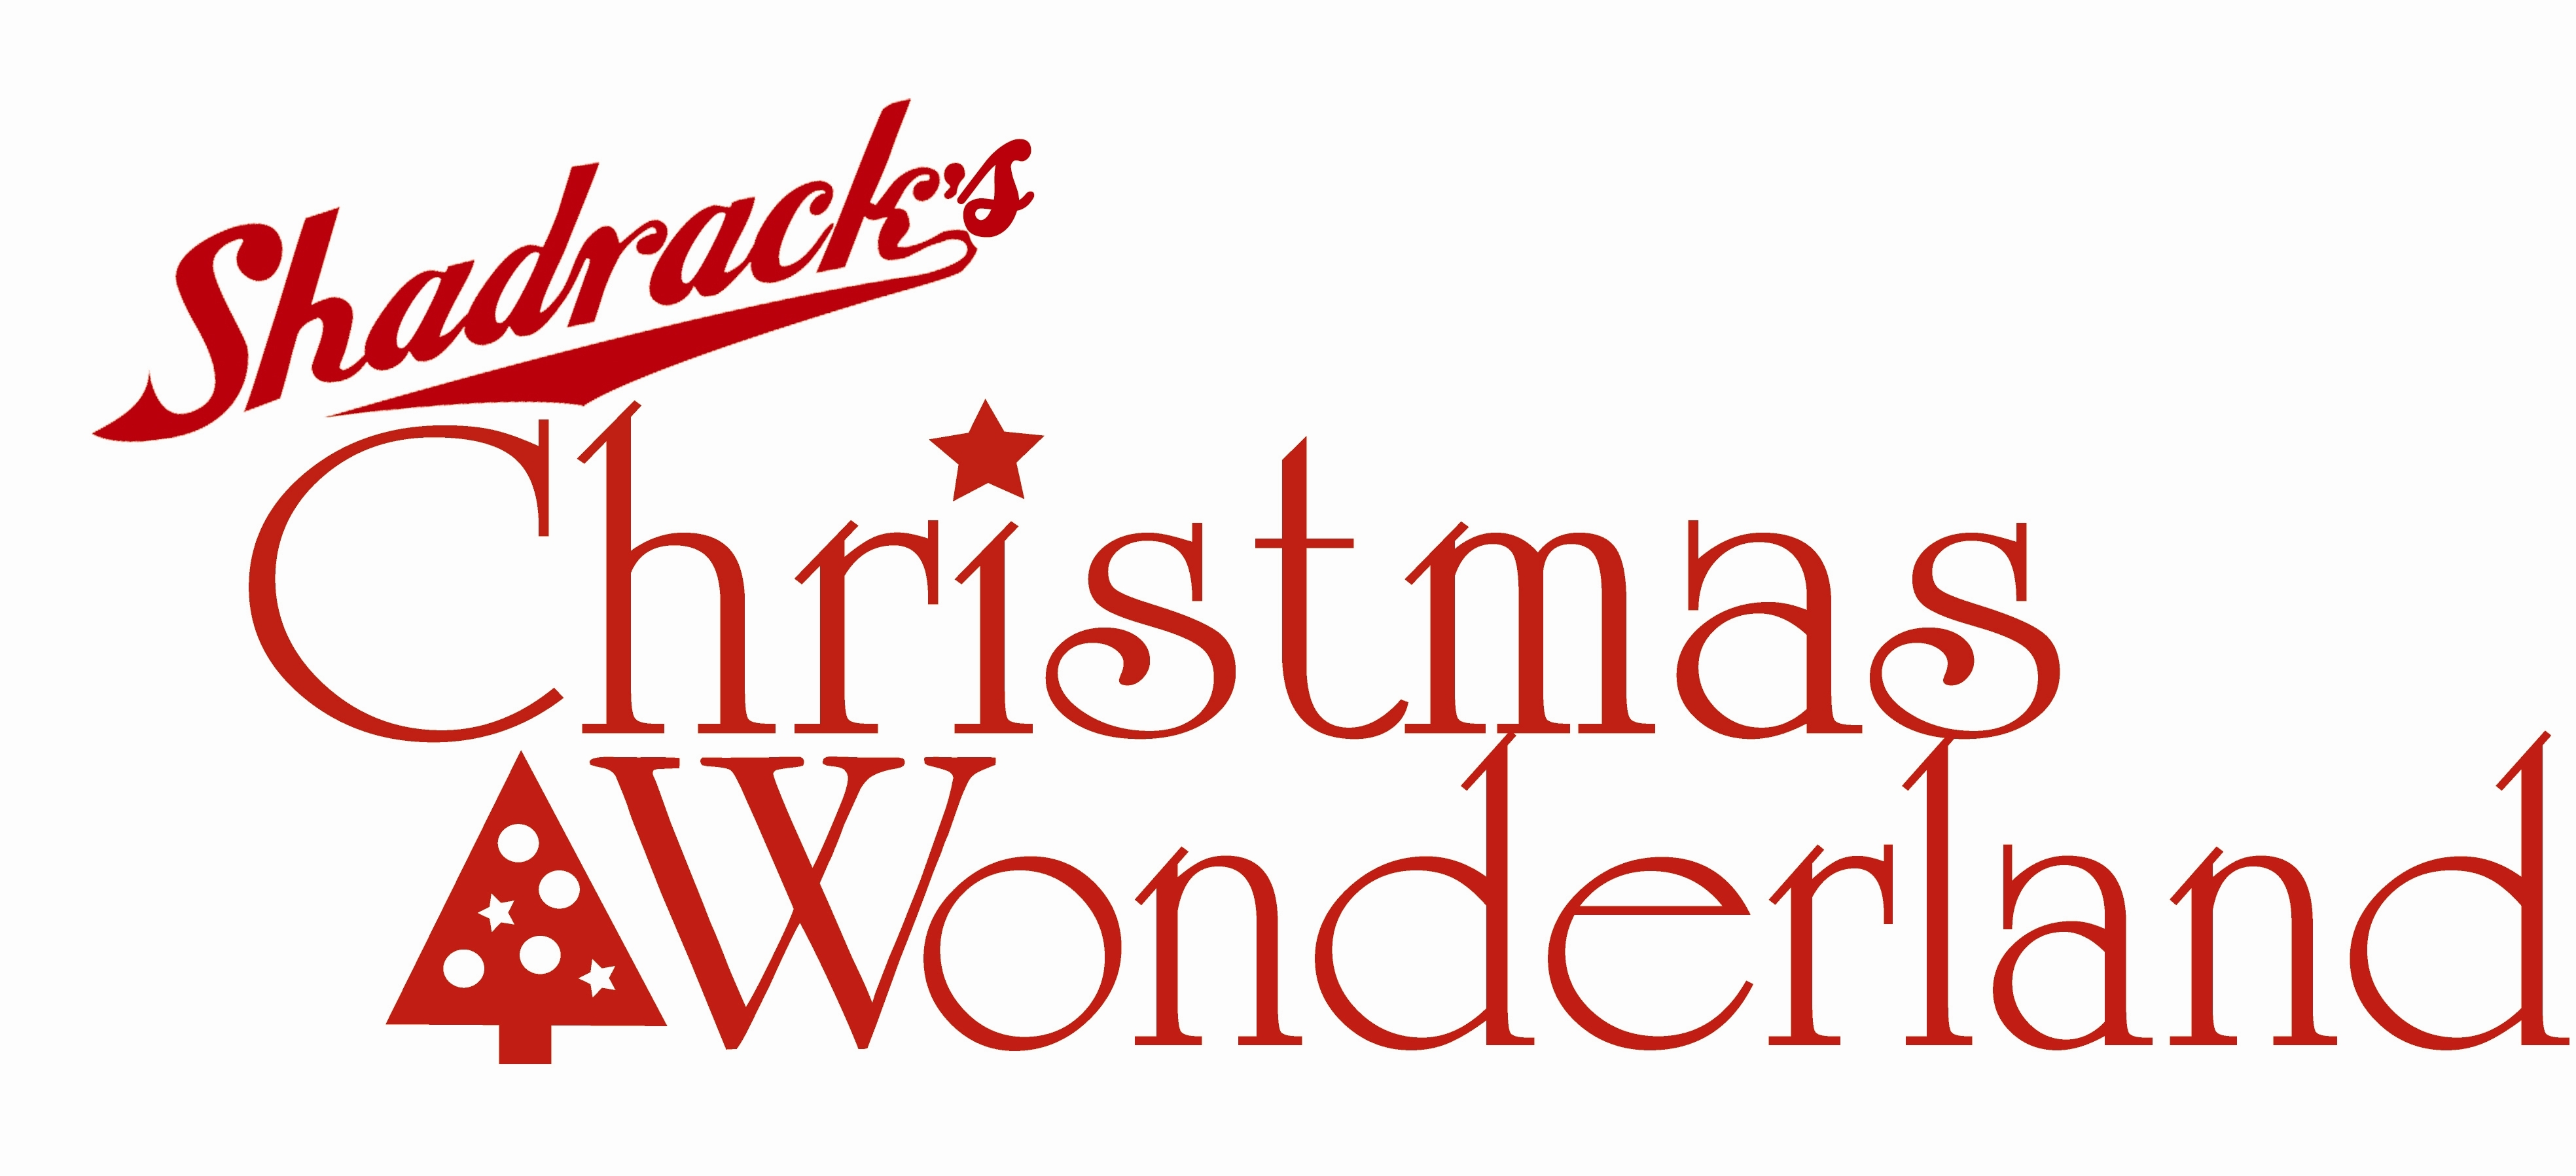 Shadrack's Christmas Wonderland